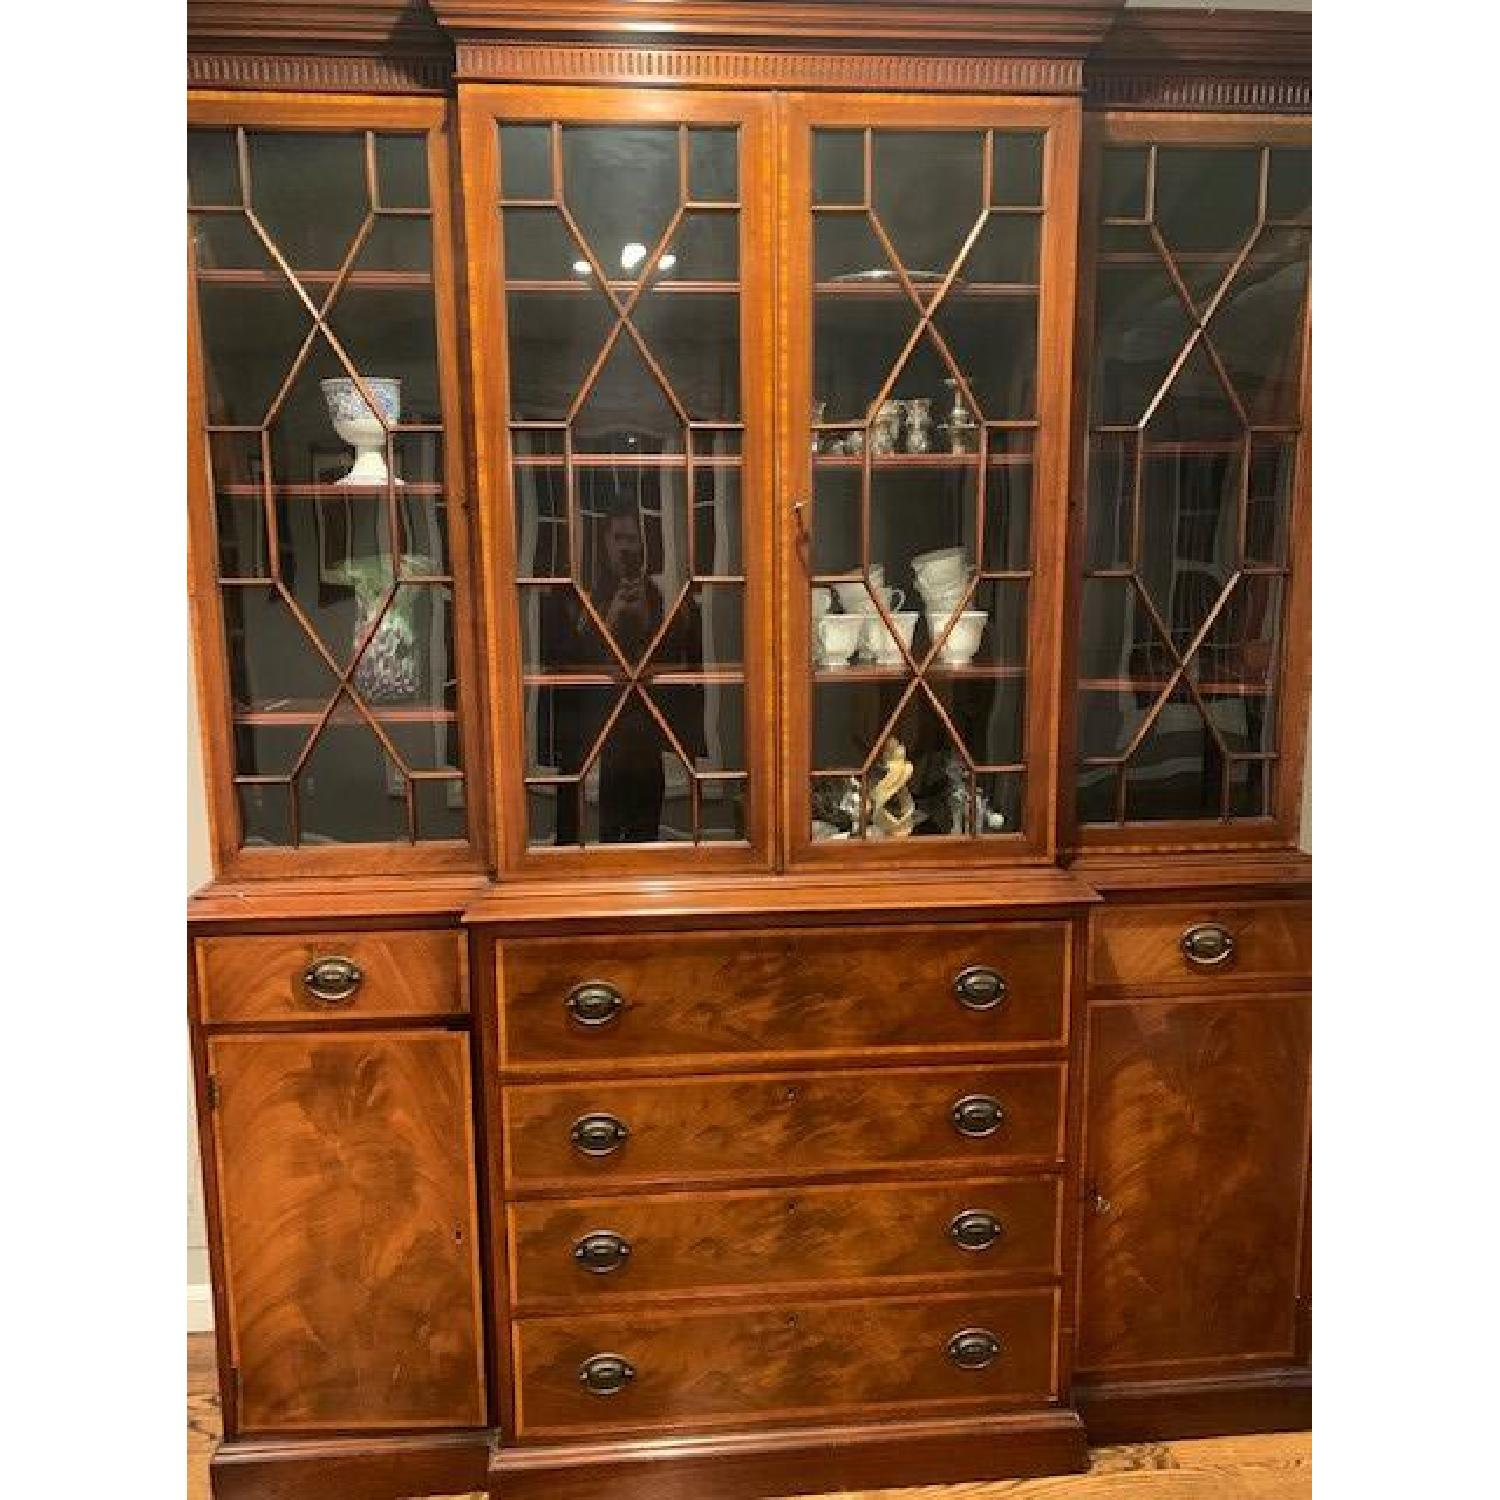 Vintage Antique 1940s Wood China Cabinet Credenza - image-1